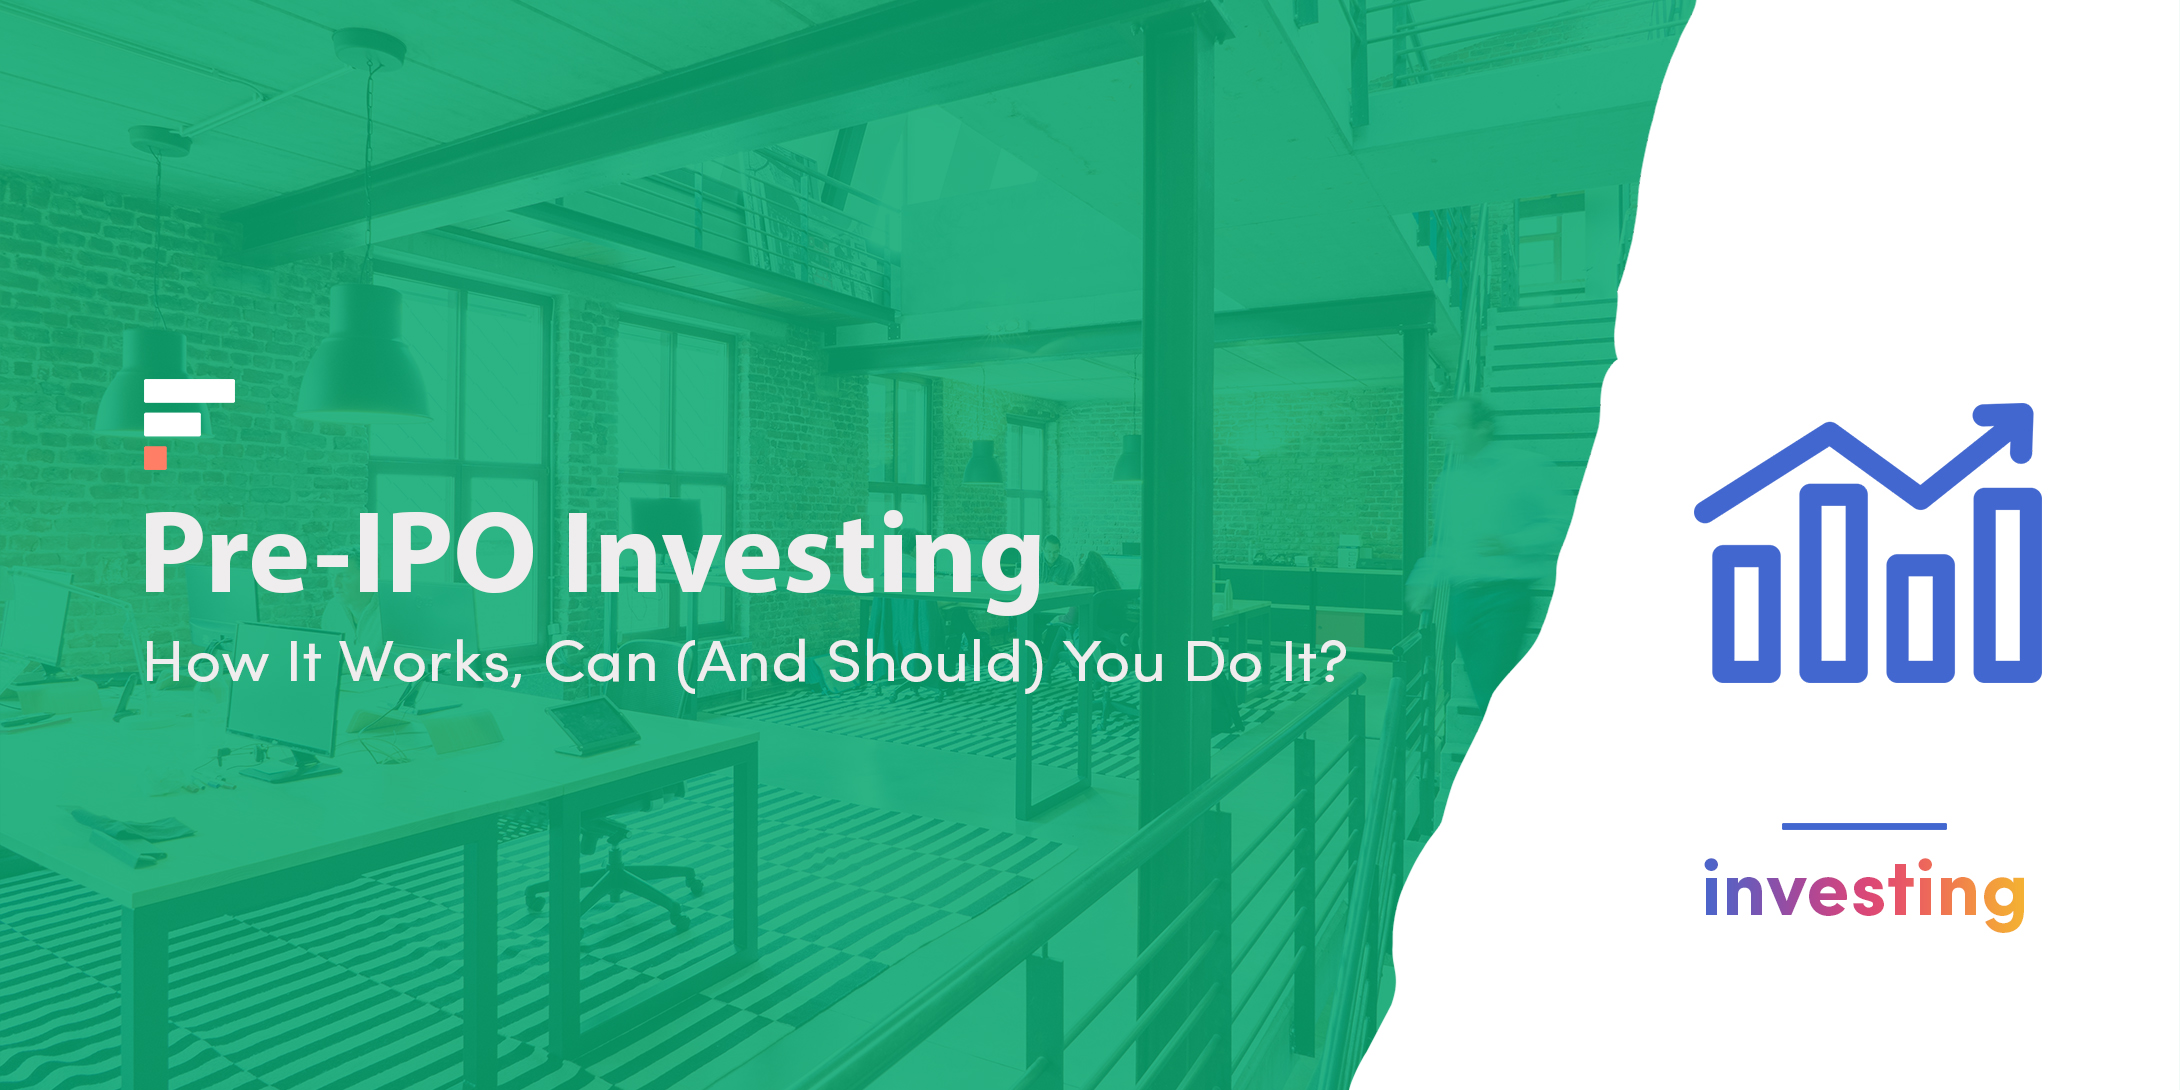 Pre-IPO investing: what is it, can and should you do it?